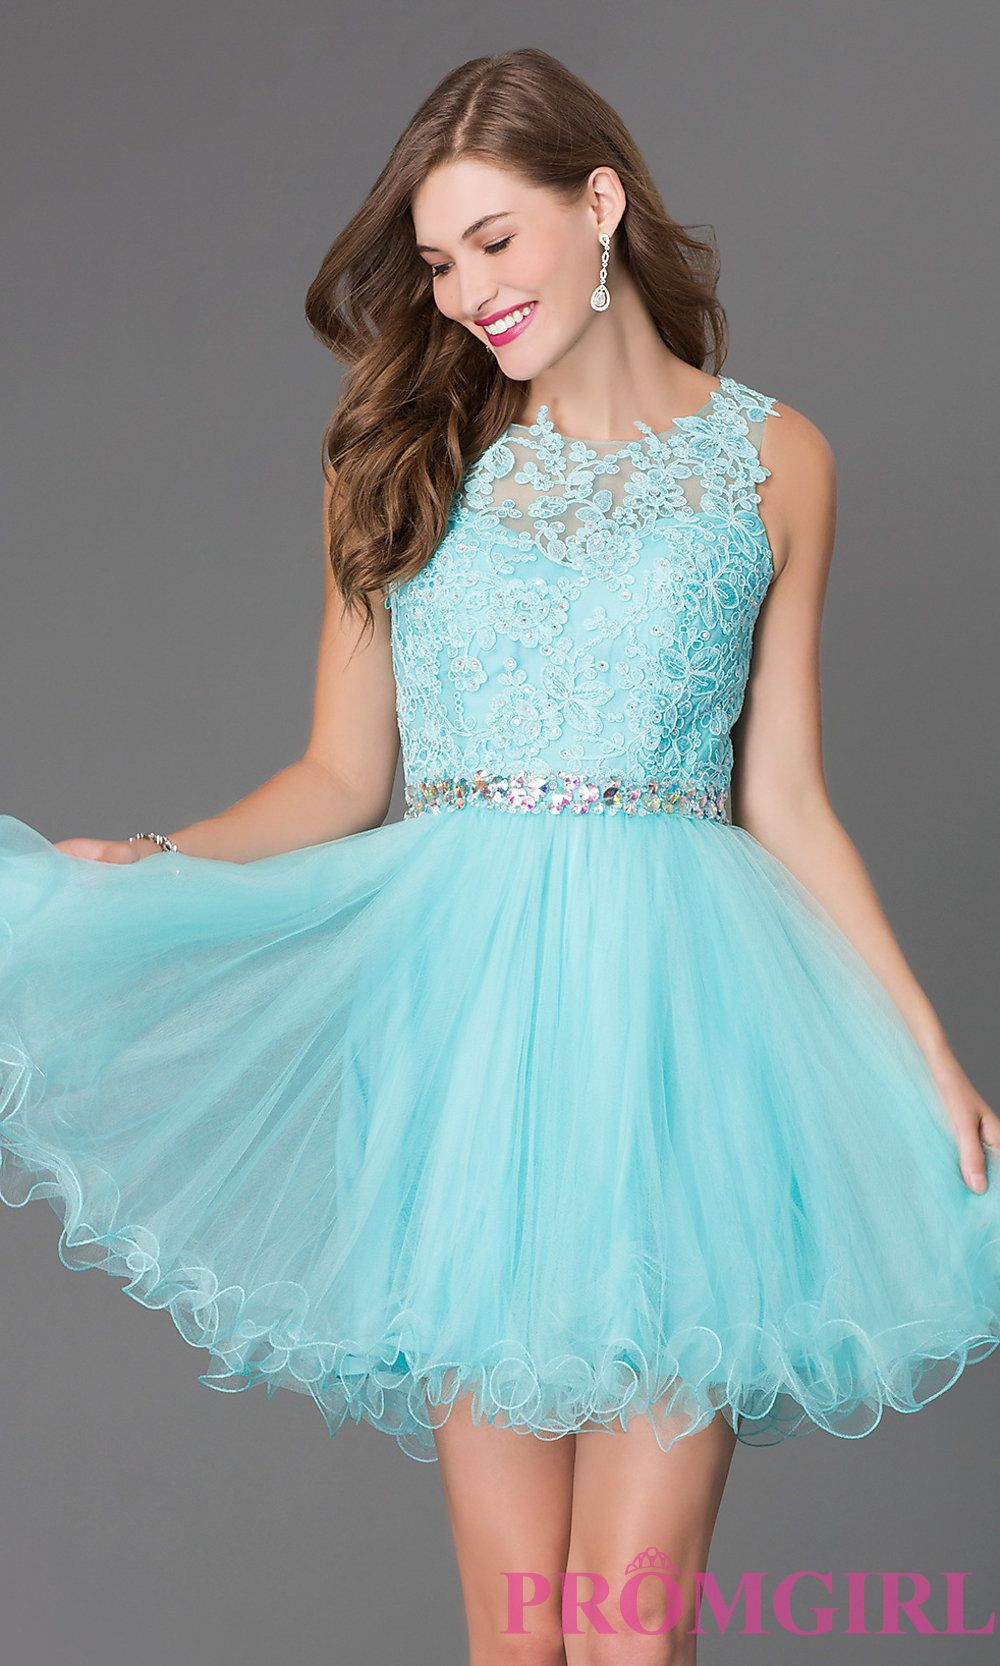 Short Tulle Lace Top Prom Dress | Shorts, Lace and Teal dresses